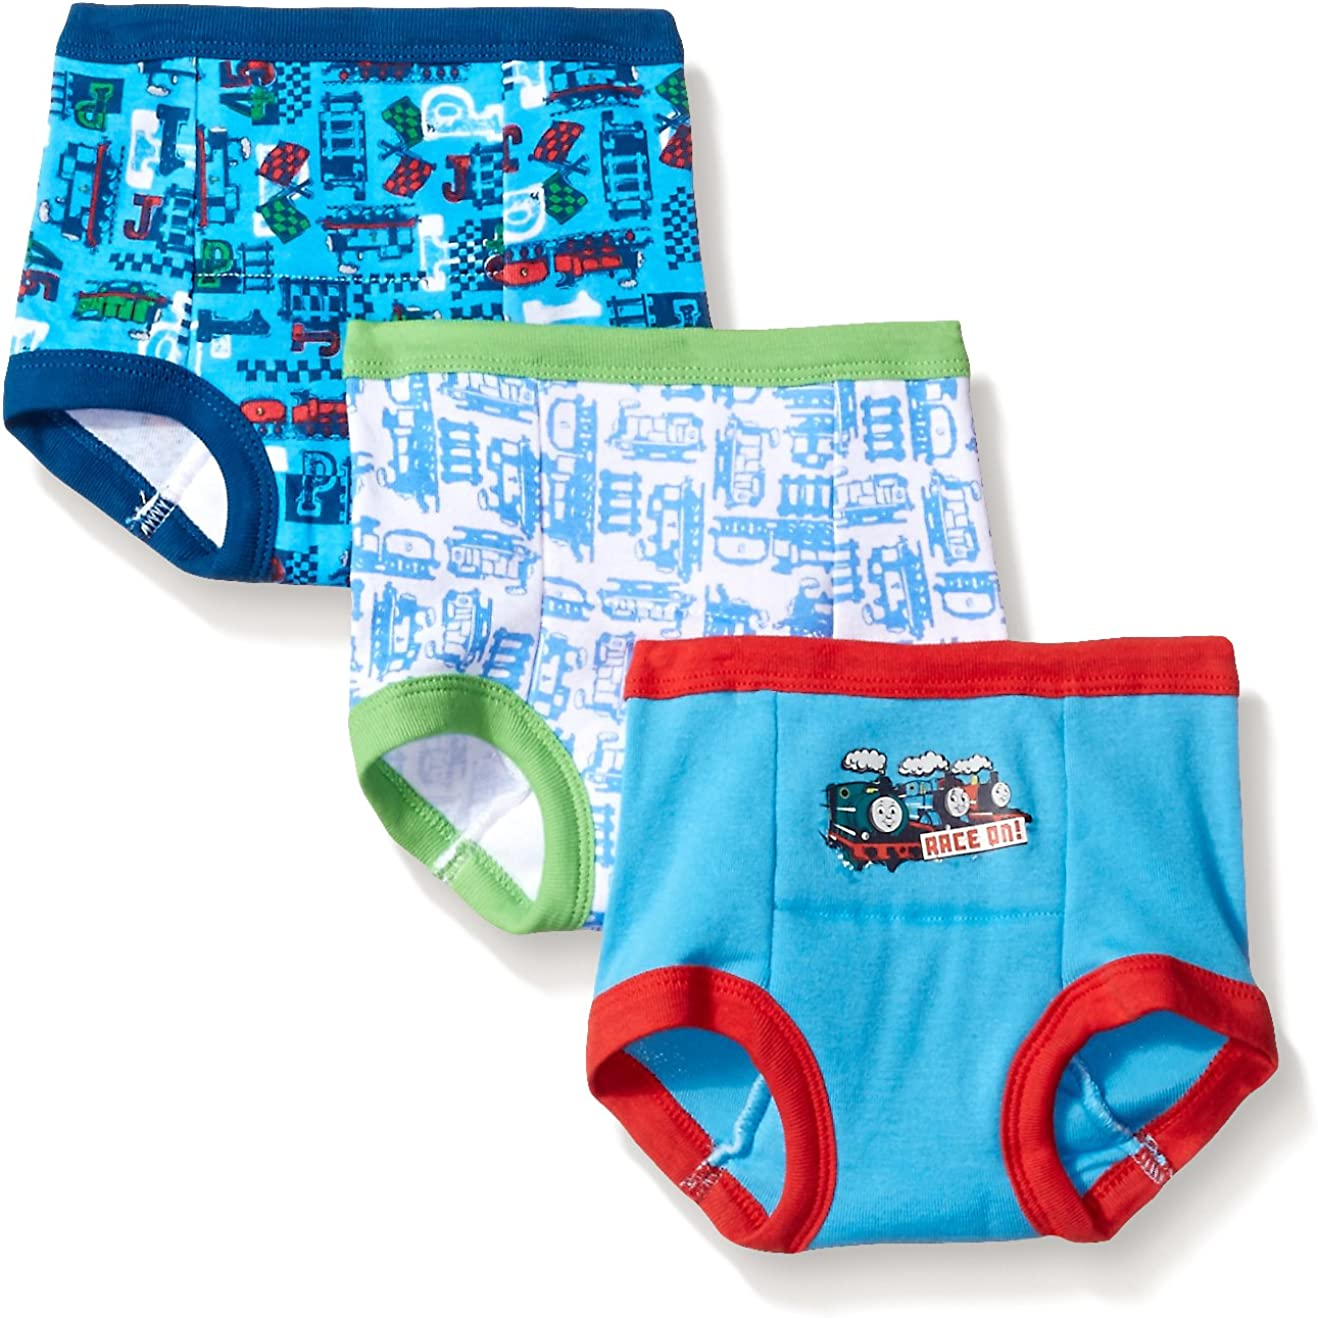 Nickelodeon Boys' Toddler Thomas die Tank Engine Training Pants